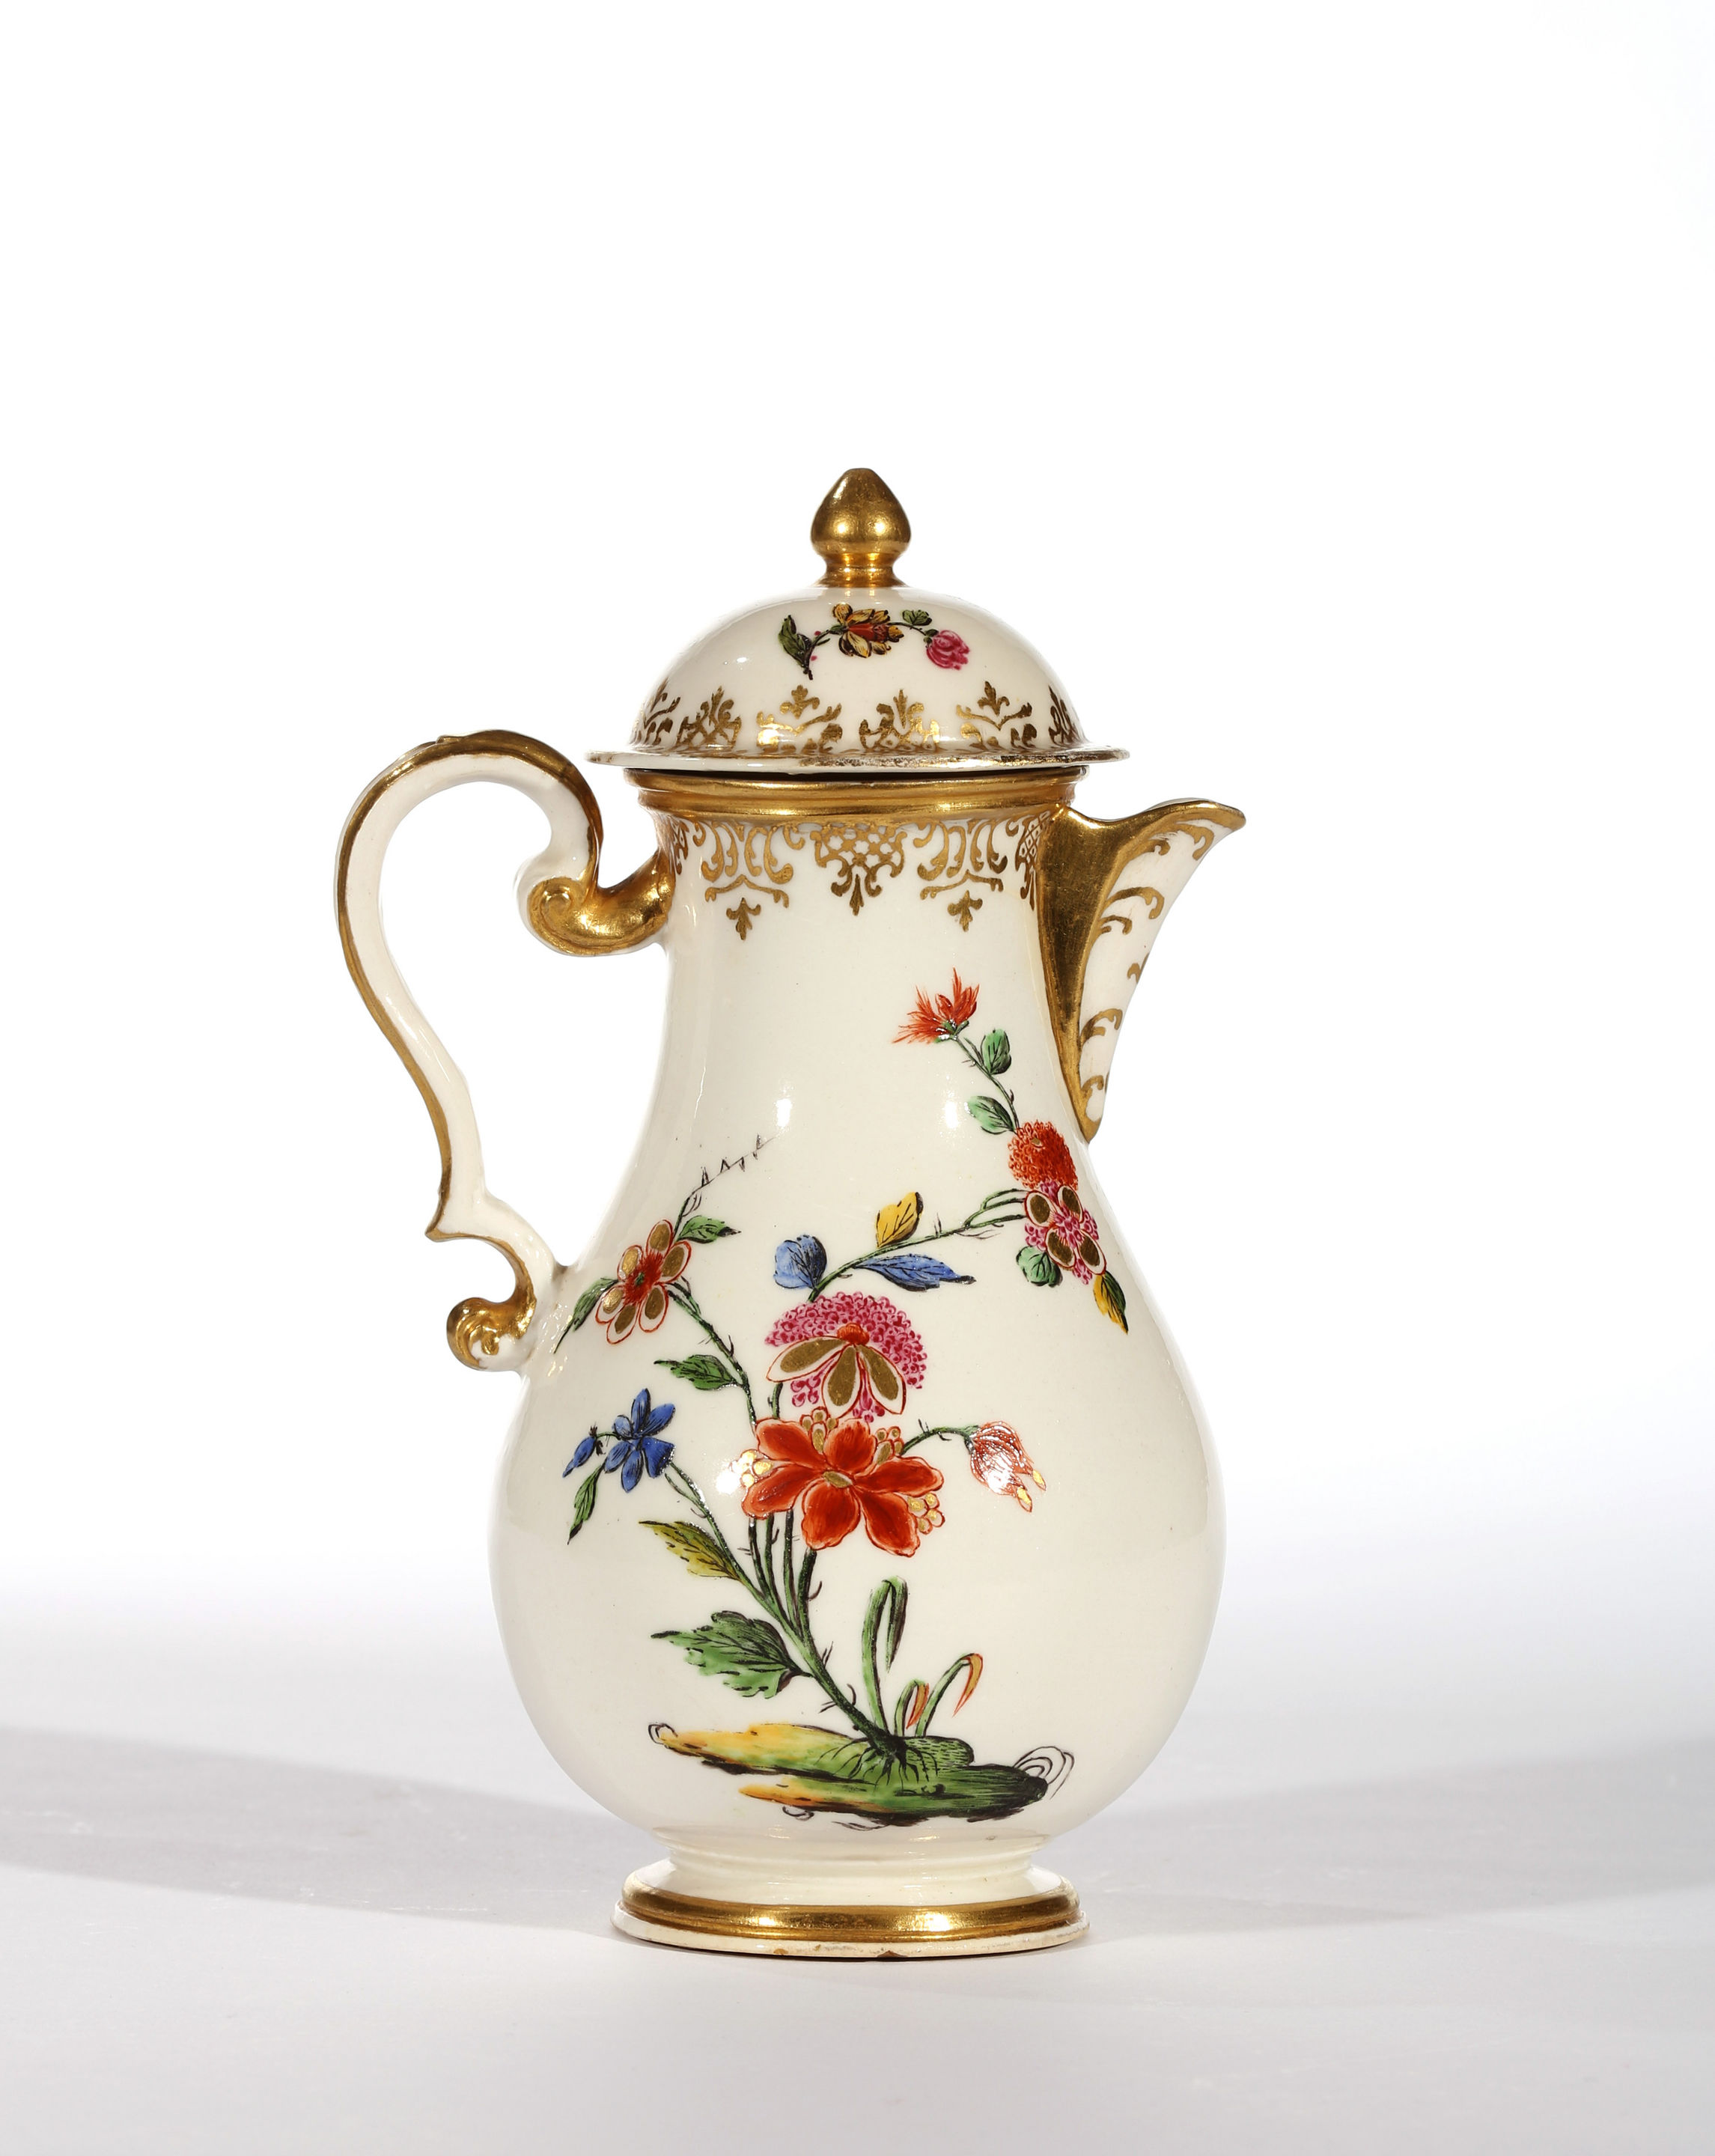 A CAPODIMONTE HOT WATER JUG AND COVER